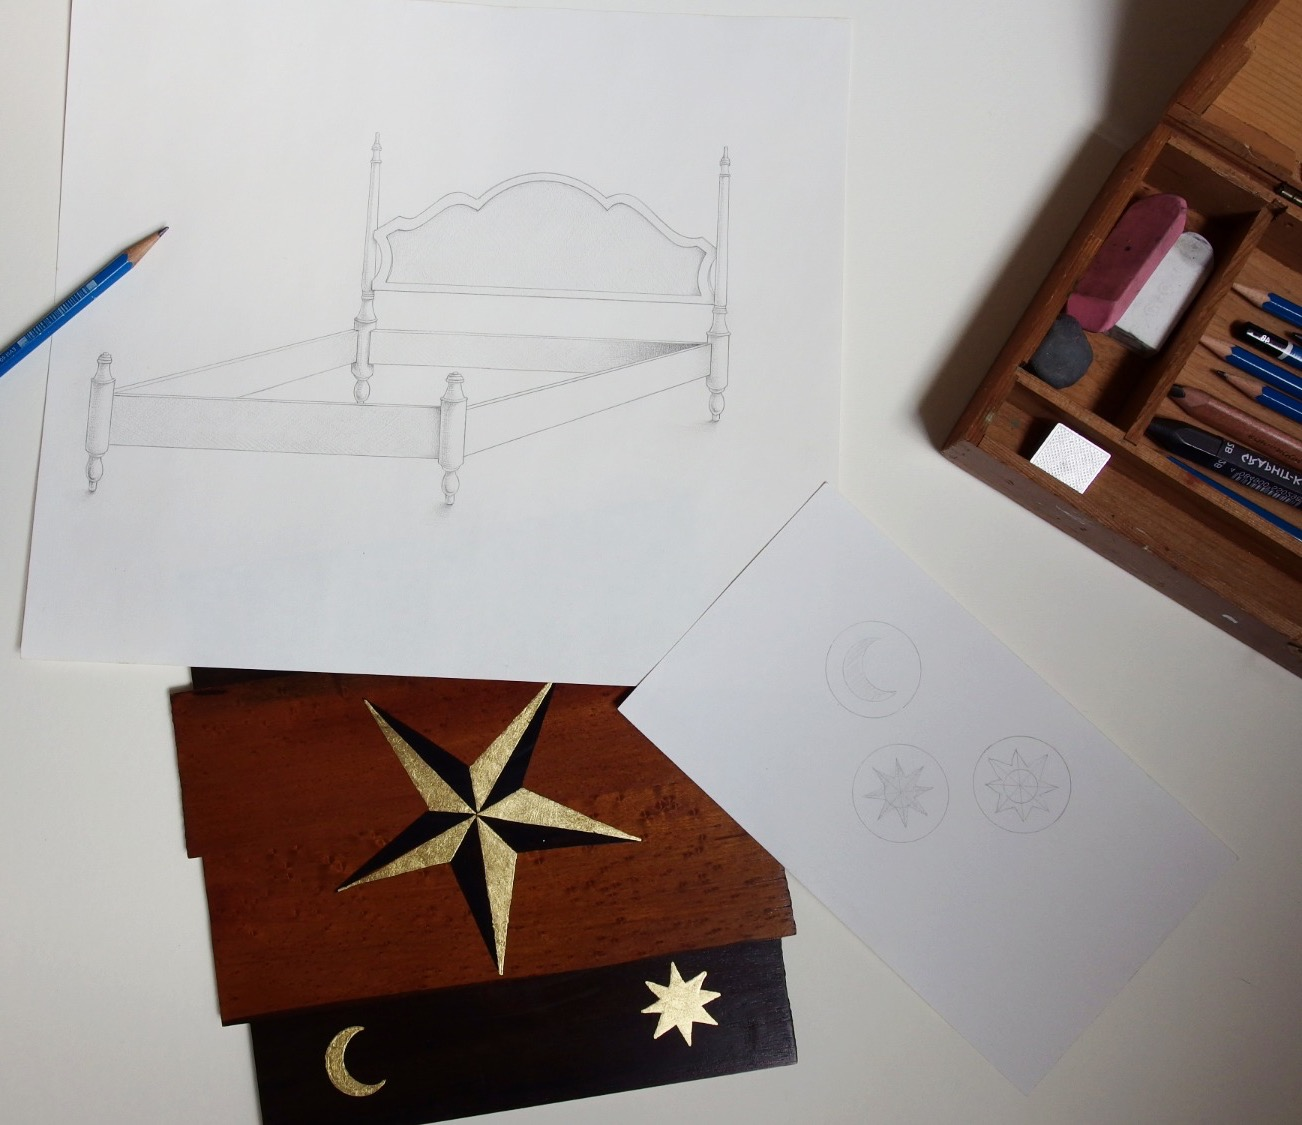 Design process for King size bed with small scale mock up of hand gilded designs